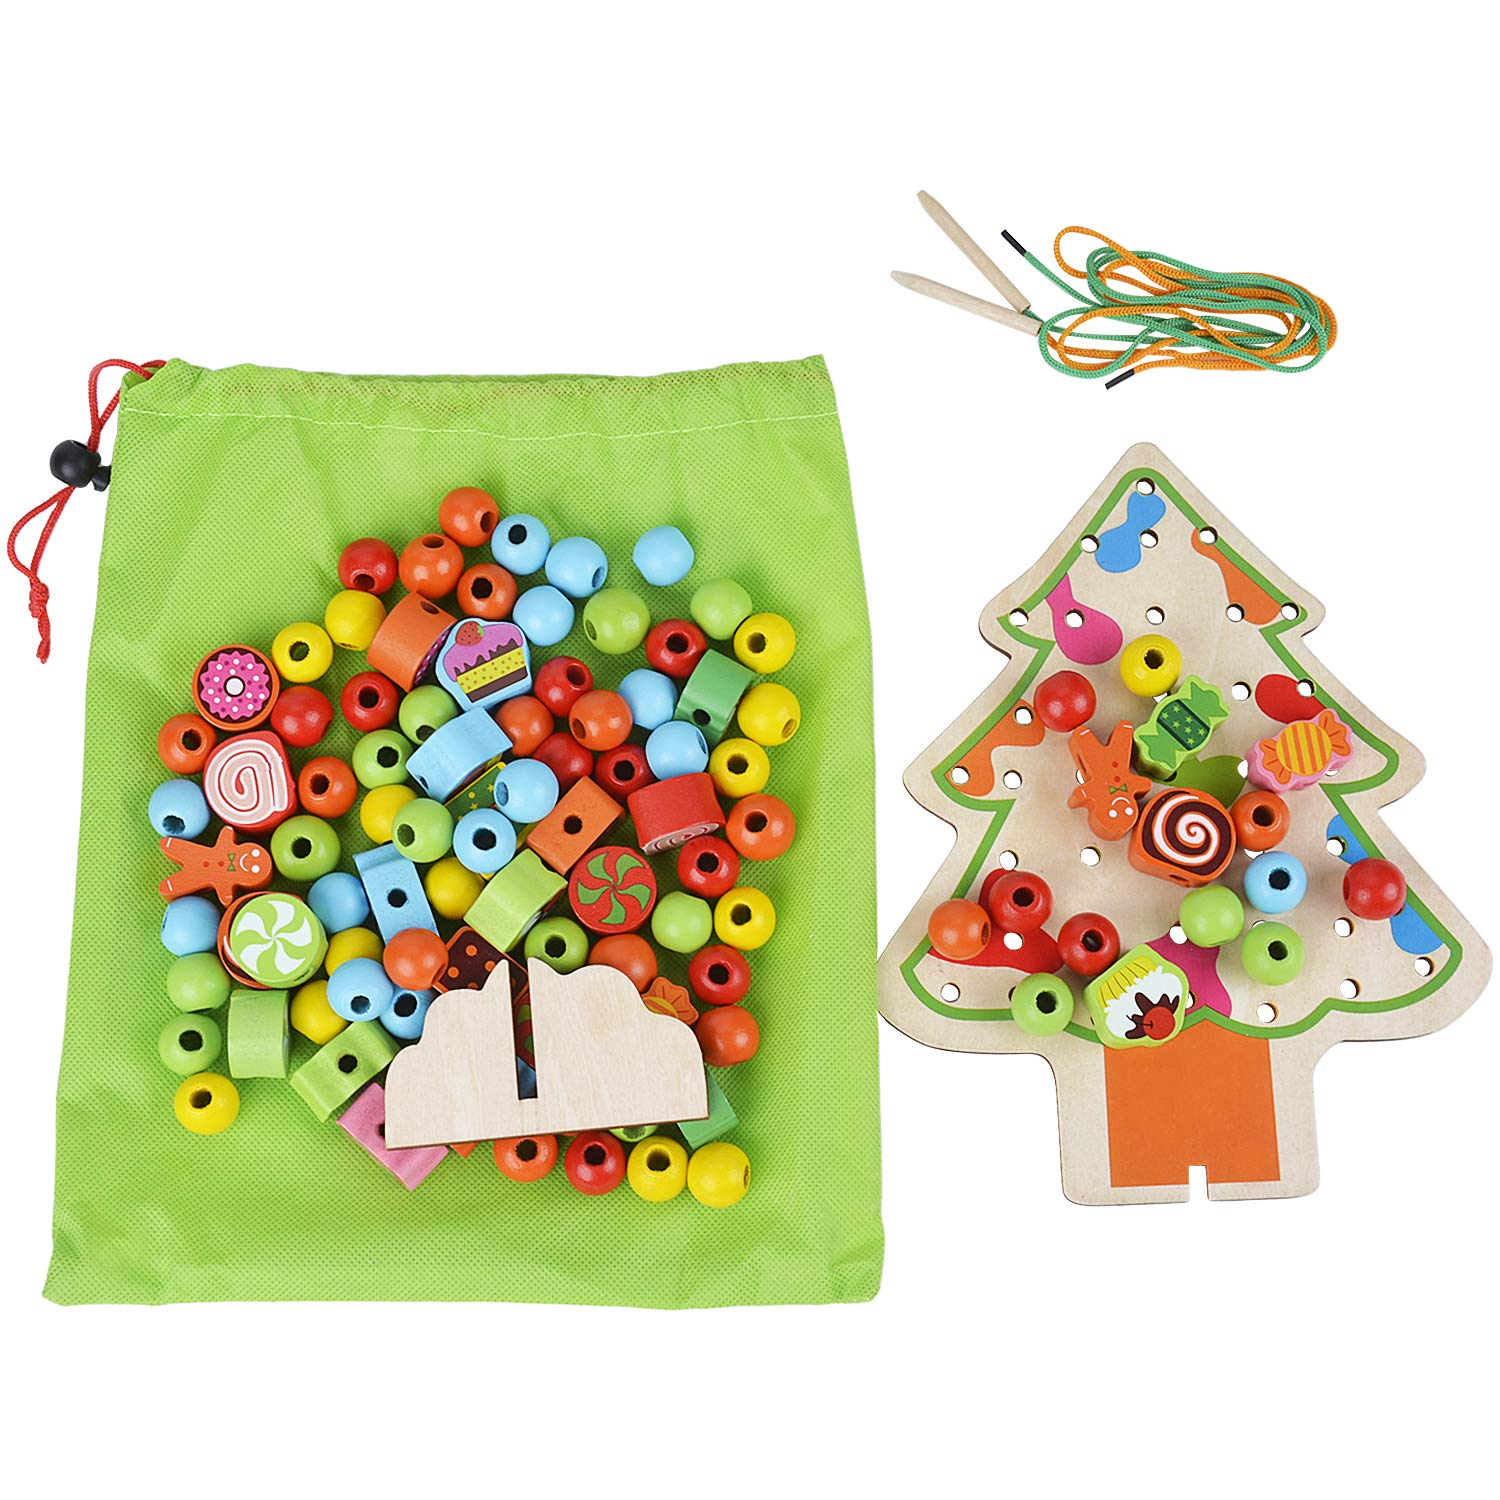 B bangcool Kids' Stringing Beads Toy Christmas Tree Stringing Beads Educational Threading Beading Kit Wood Stringing Beads for Kids